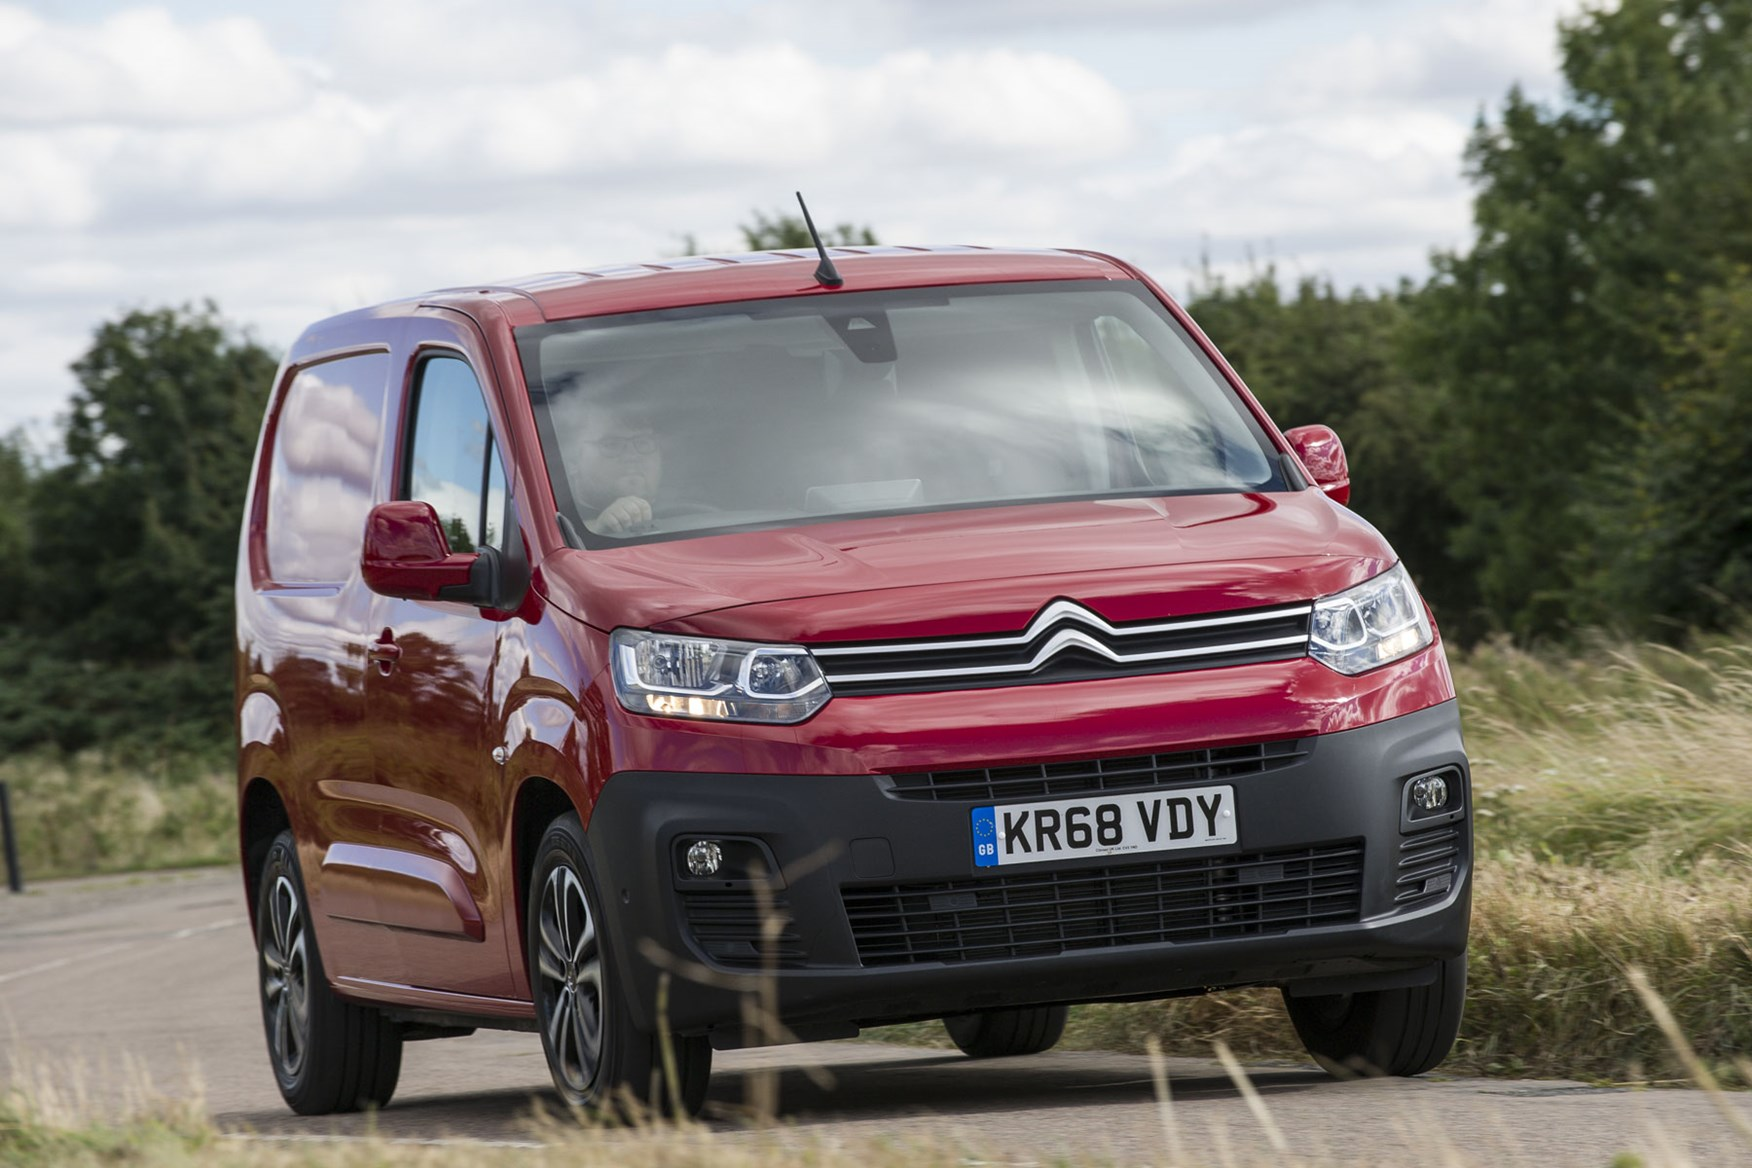 Citroen Berlingo van review - 2019 model, front view, red, driving